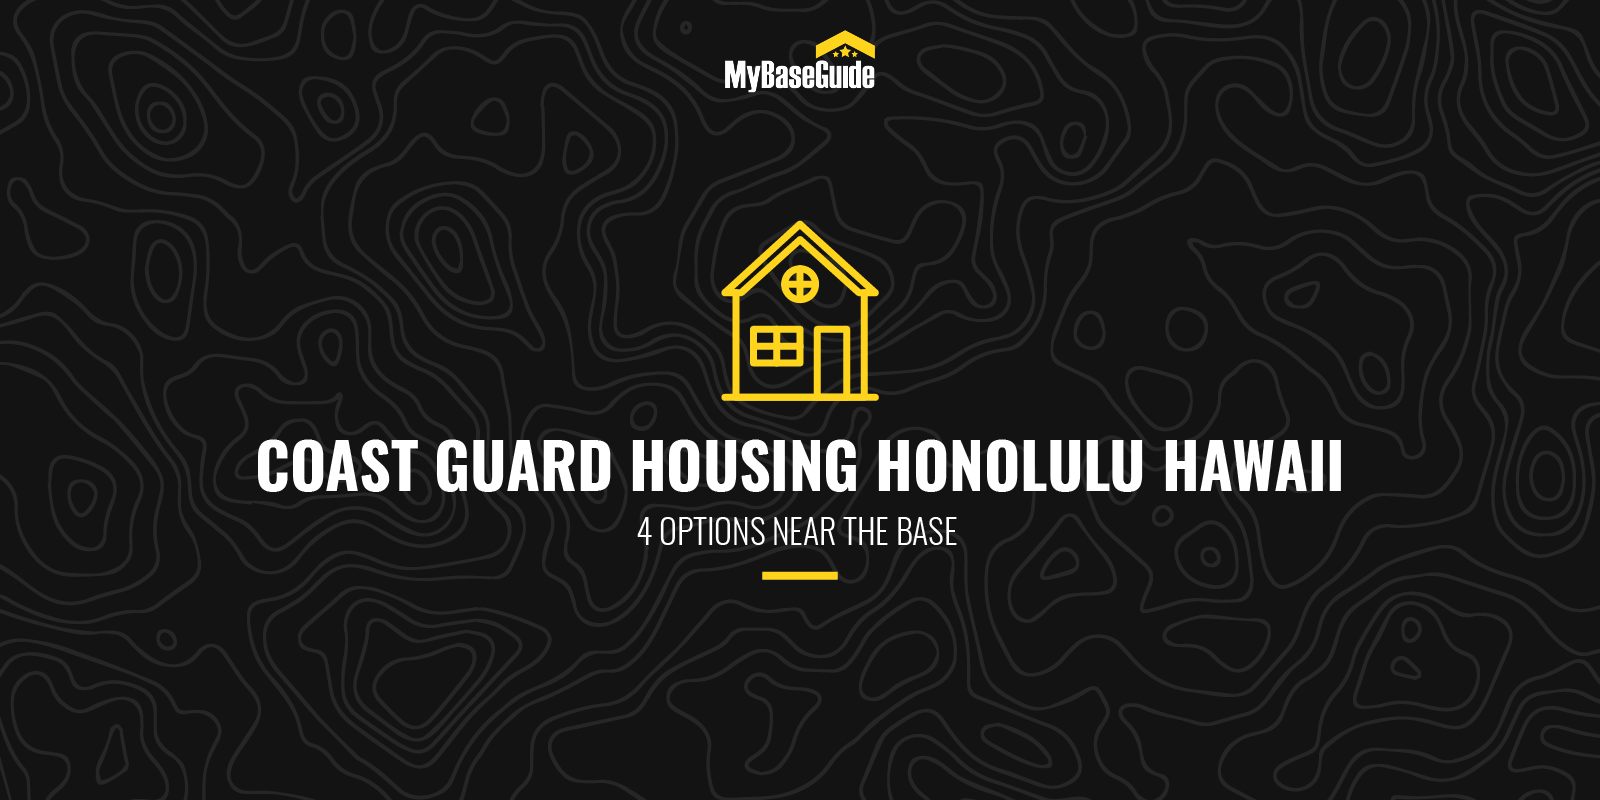 Coast Guard Housing Honolulu Hawaii: 4 Options Near the Base